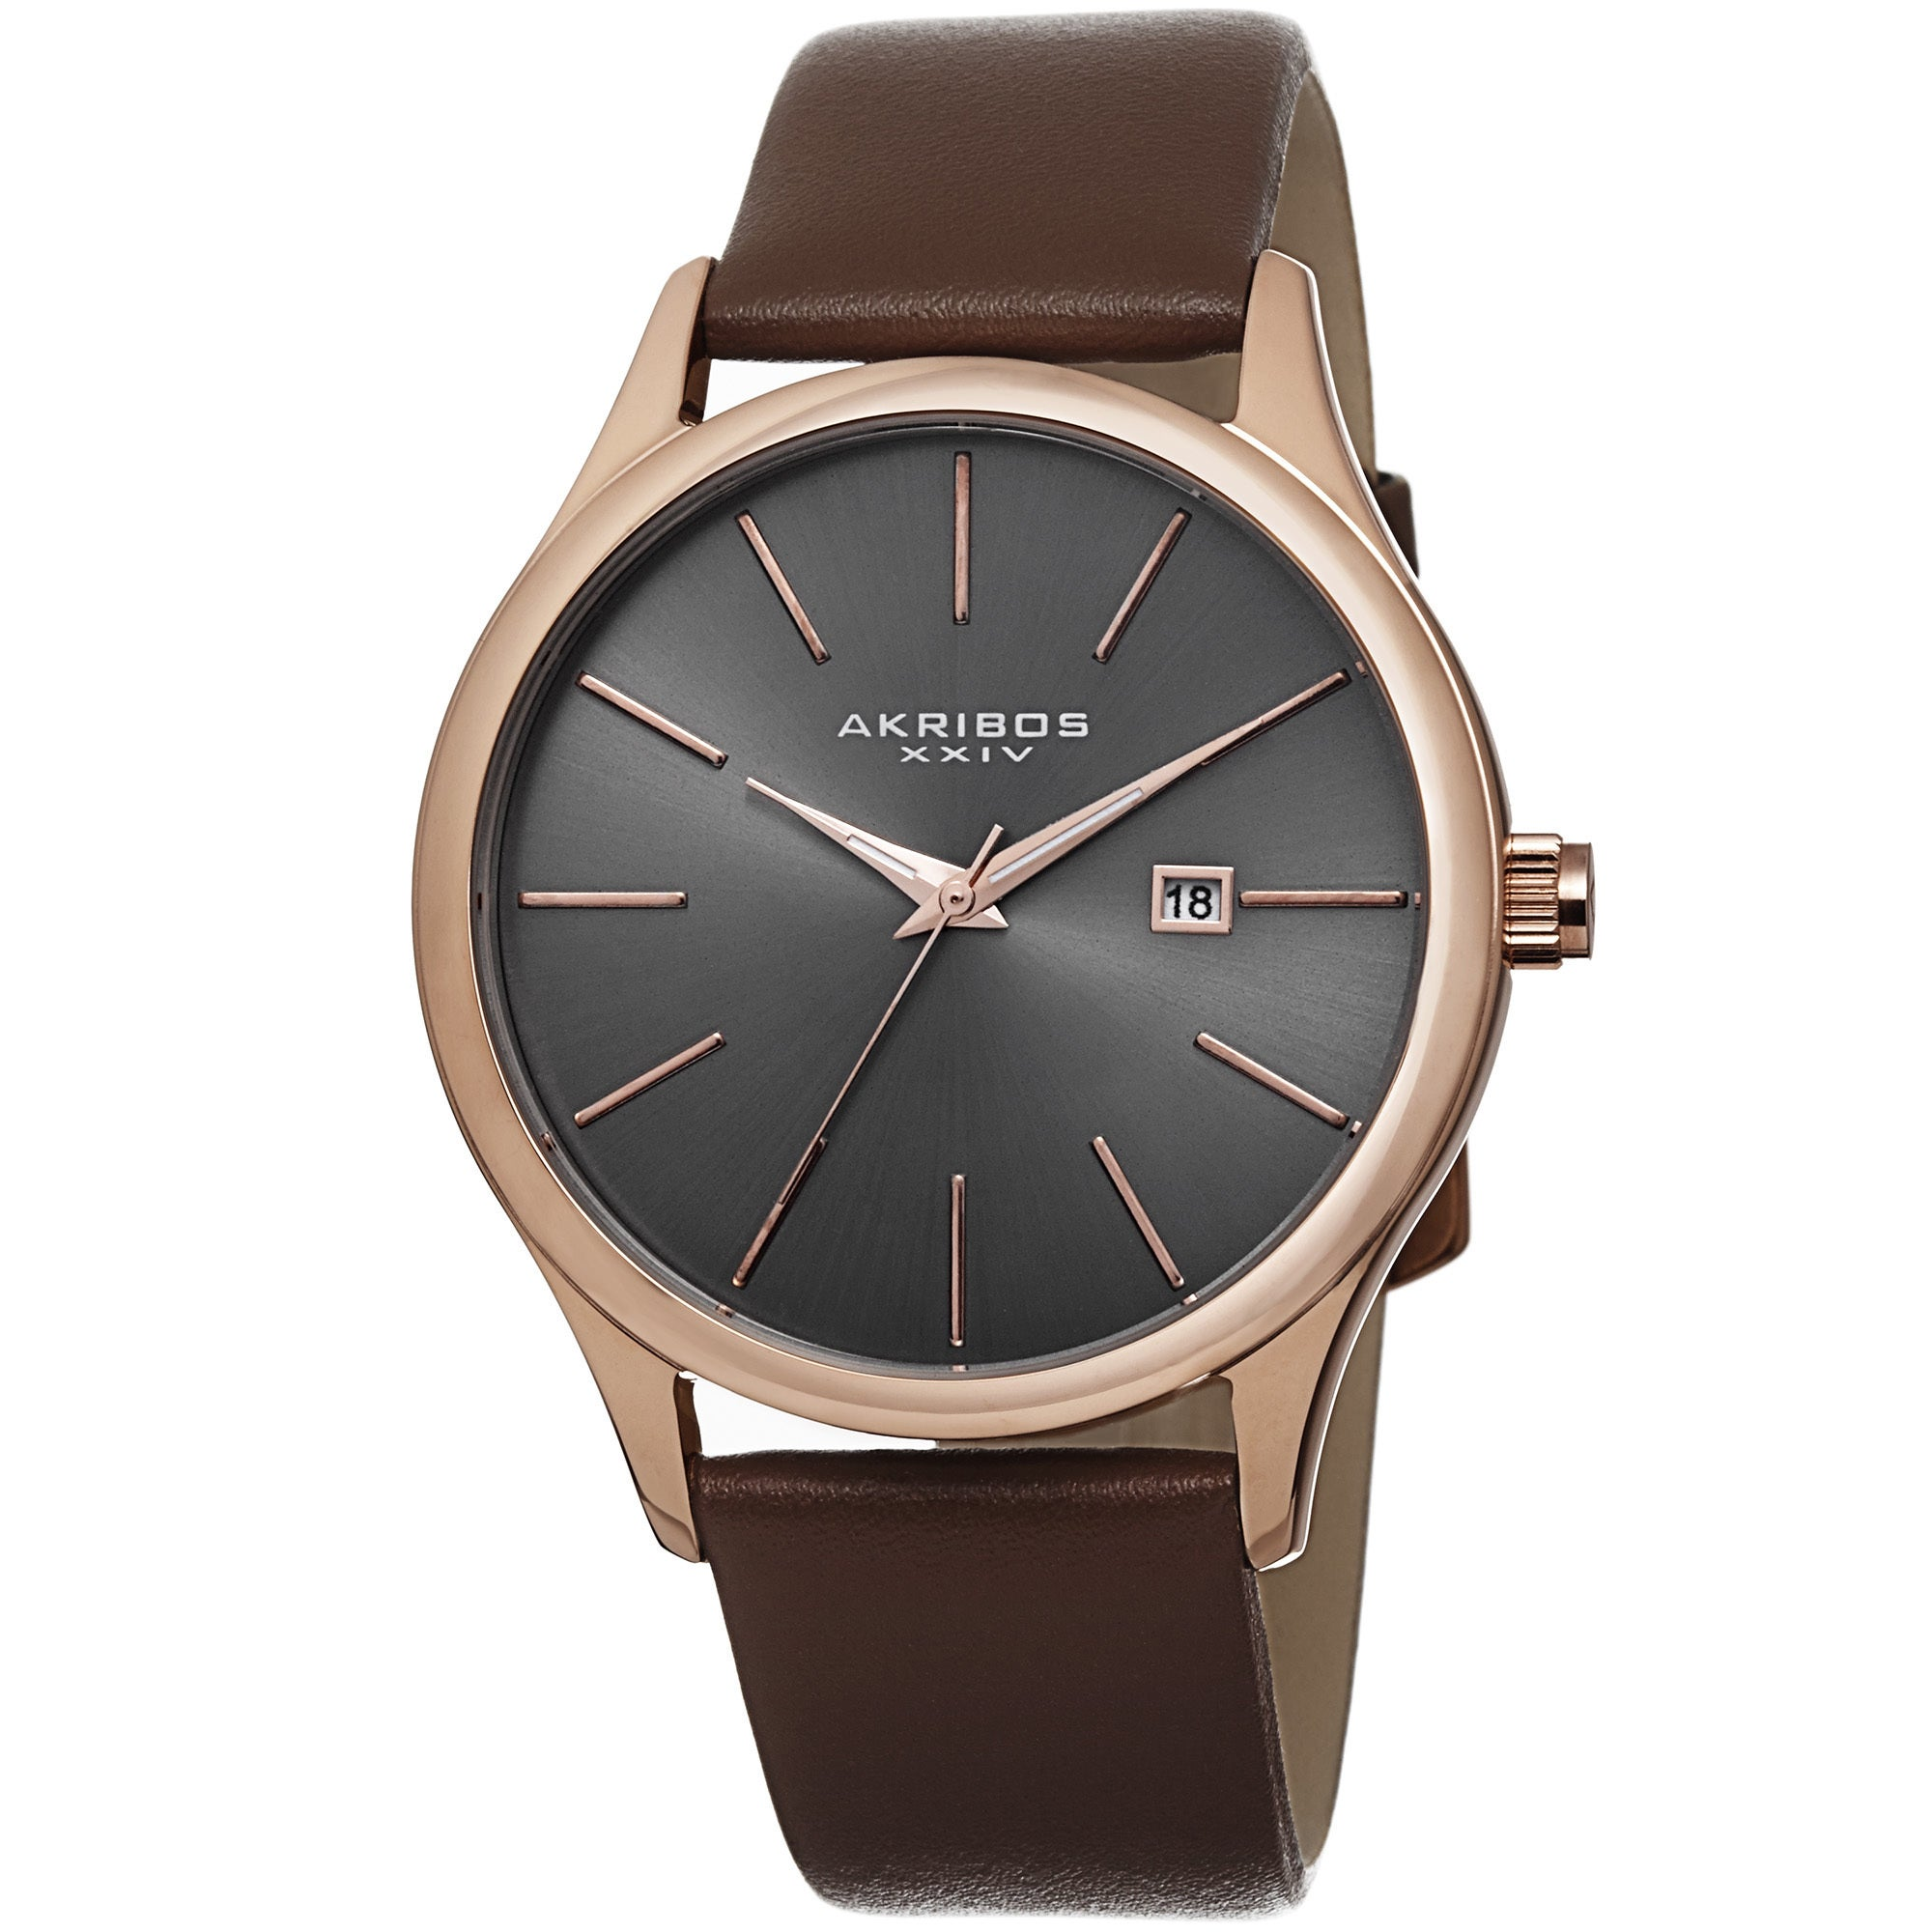 image skagen review watch leather tan s c mens hagen strap watches